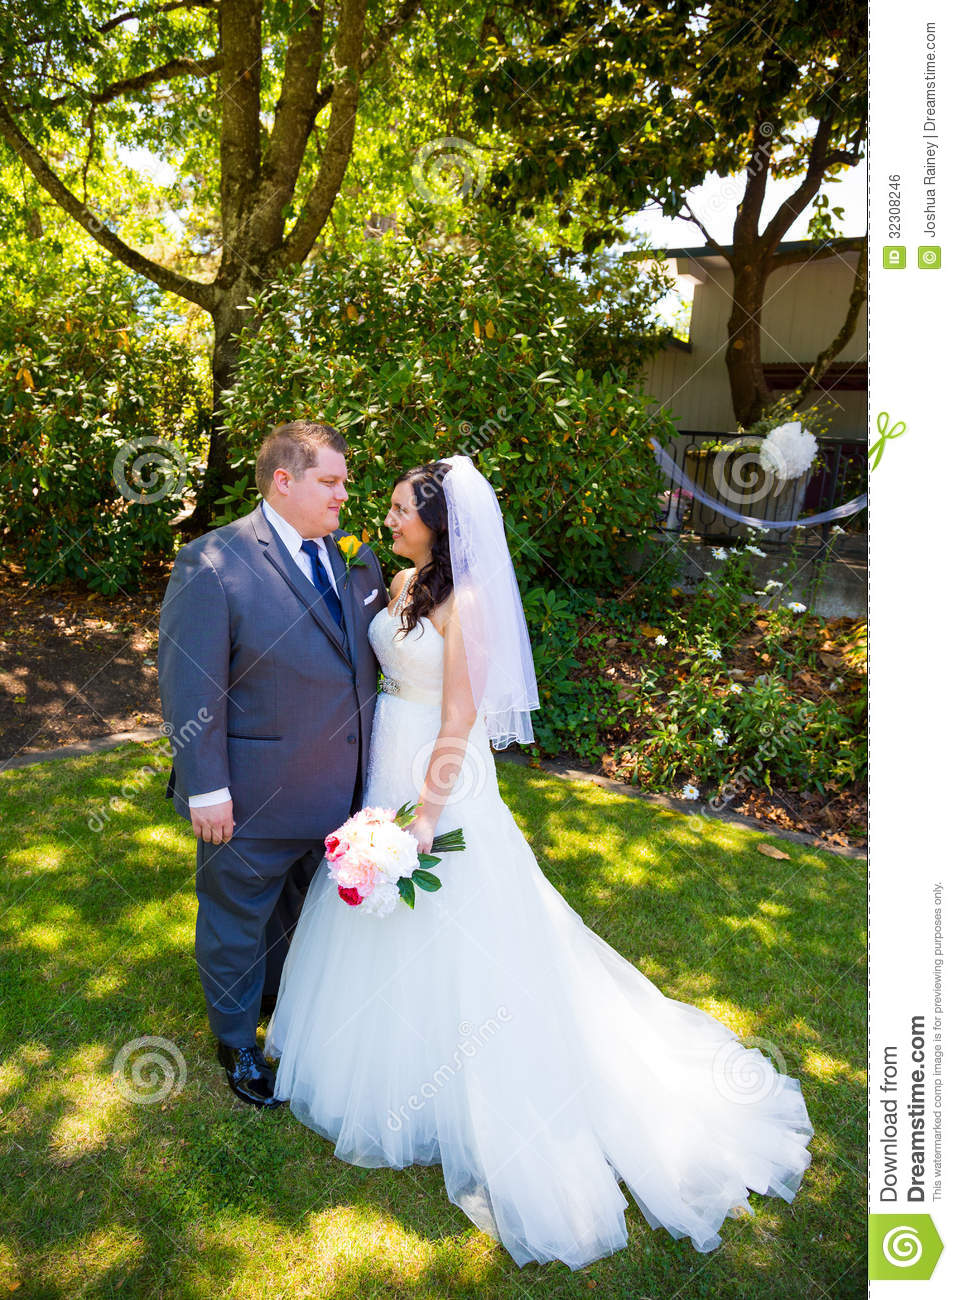 Bride And Groom Wedding Day Royalty Free Stock Image. Sweetheart Wedding Dresses Online. Halter Wedding Dresses Ebay. Garden Wedding Dresses Plus Size. Champagne Or Ivory Wedding Dresses. Corset Wedding Dresses Gothic. Long Sleeve Wedding Dresses In Utah. Vintage Wedding Dresses To Hire In Cape Town. Tea Length Wedding Dresses Mature Bride